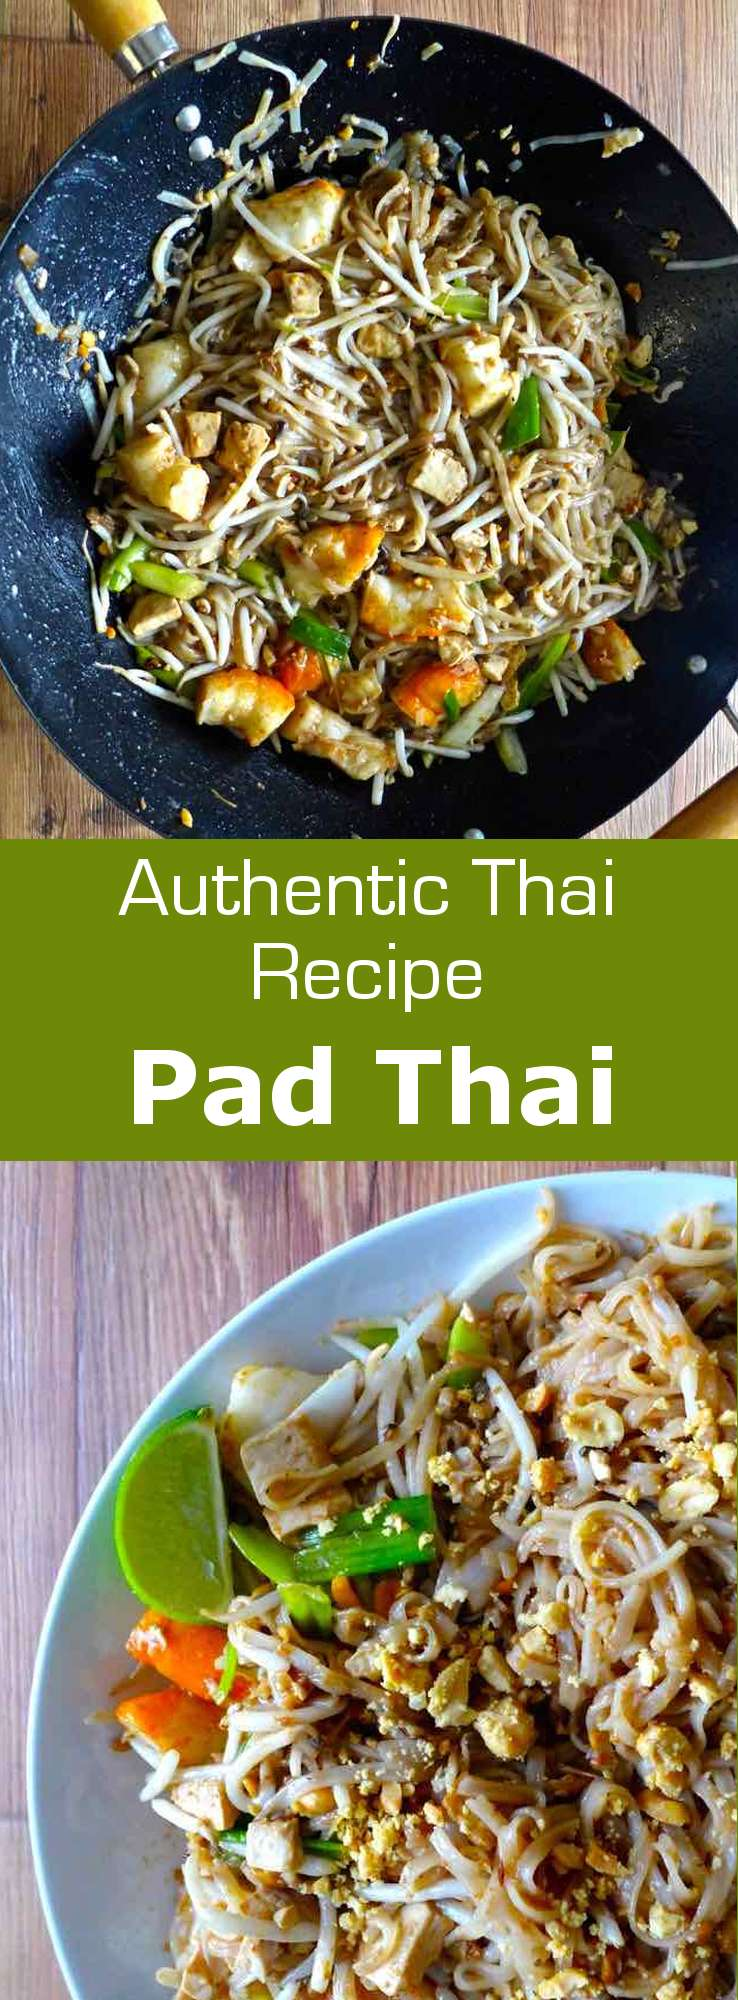 Pad thai (ผัดไทย) is probably the most famous Thai dish around the world but it is also one of the least traditional dishes in Thai cuisine. #thailand #196flavors